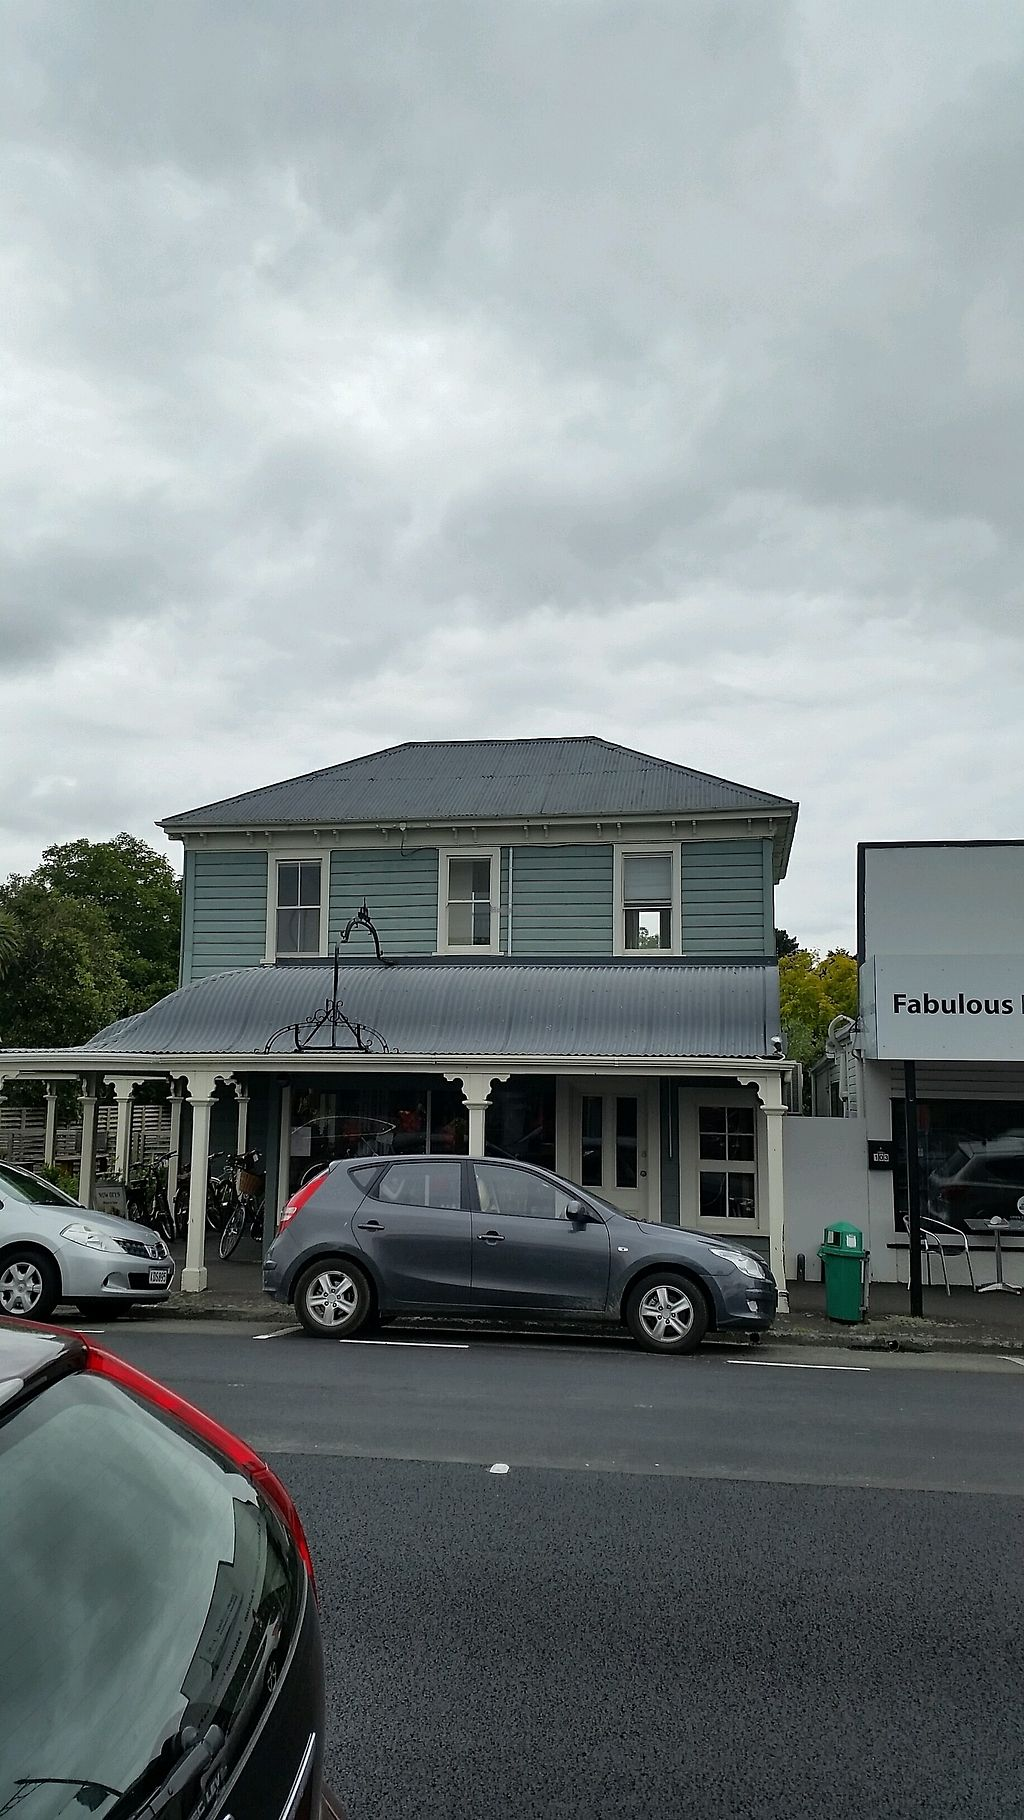 """Photo of Food Forest Organics  by <a href=""""/members/profile/AndyTheVWDude"""">AndyTheVWDude</a> <br/>Food Forest ~ Main Street, Greytown <br/> November 12, 2017  - <a href='/contact/abuse/image/56720/324830'>Report</a>"""